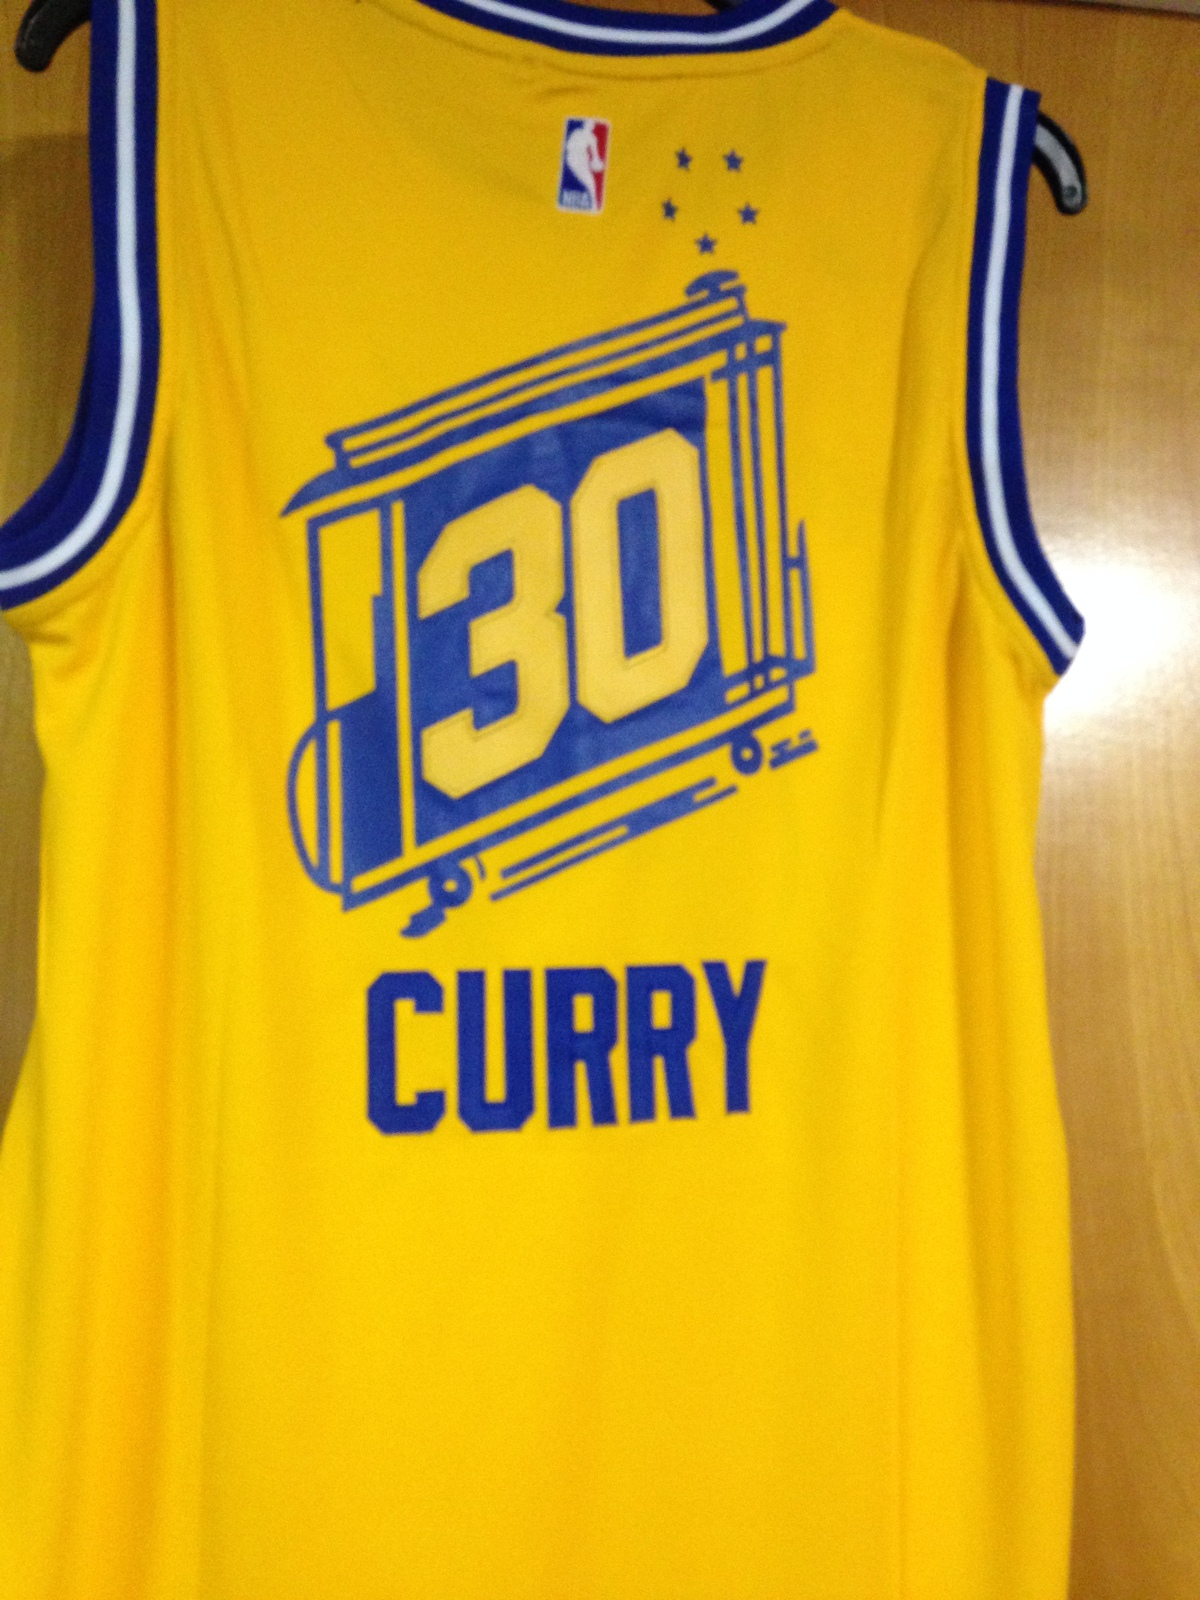 Stephen Curry Hardwood Classics Throwback Jersey image 4